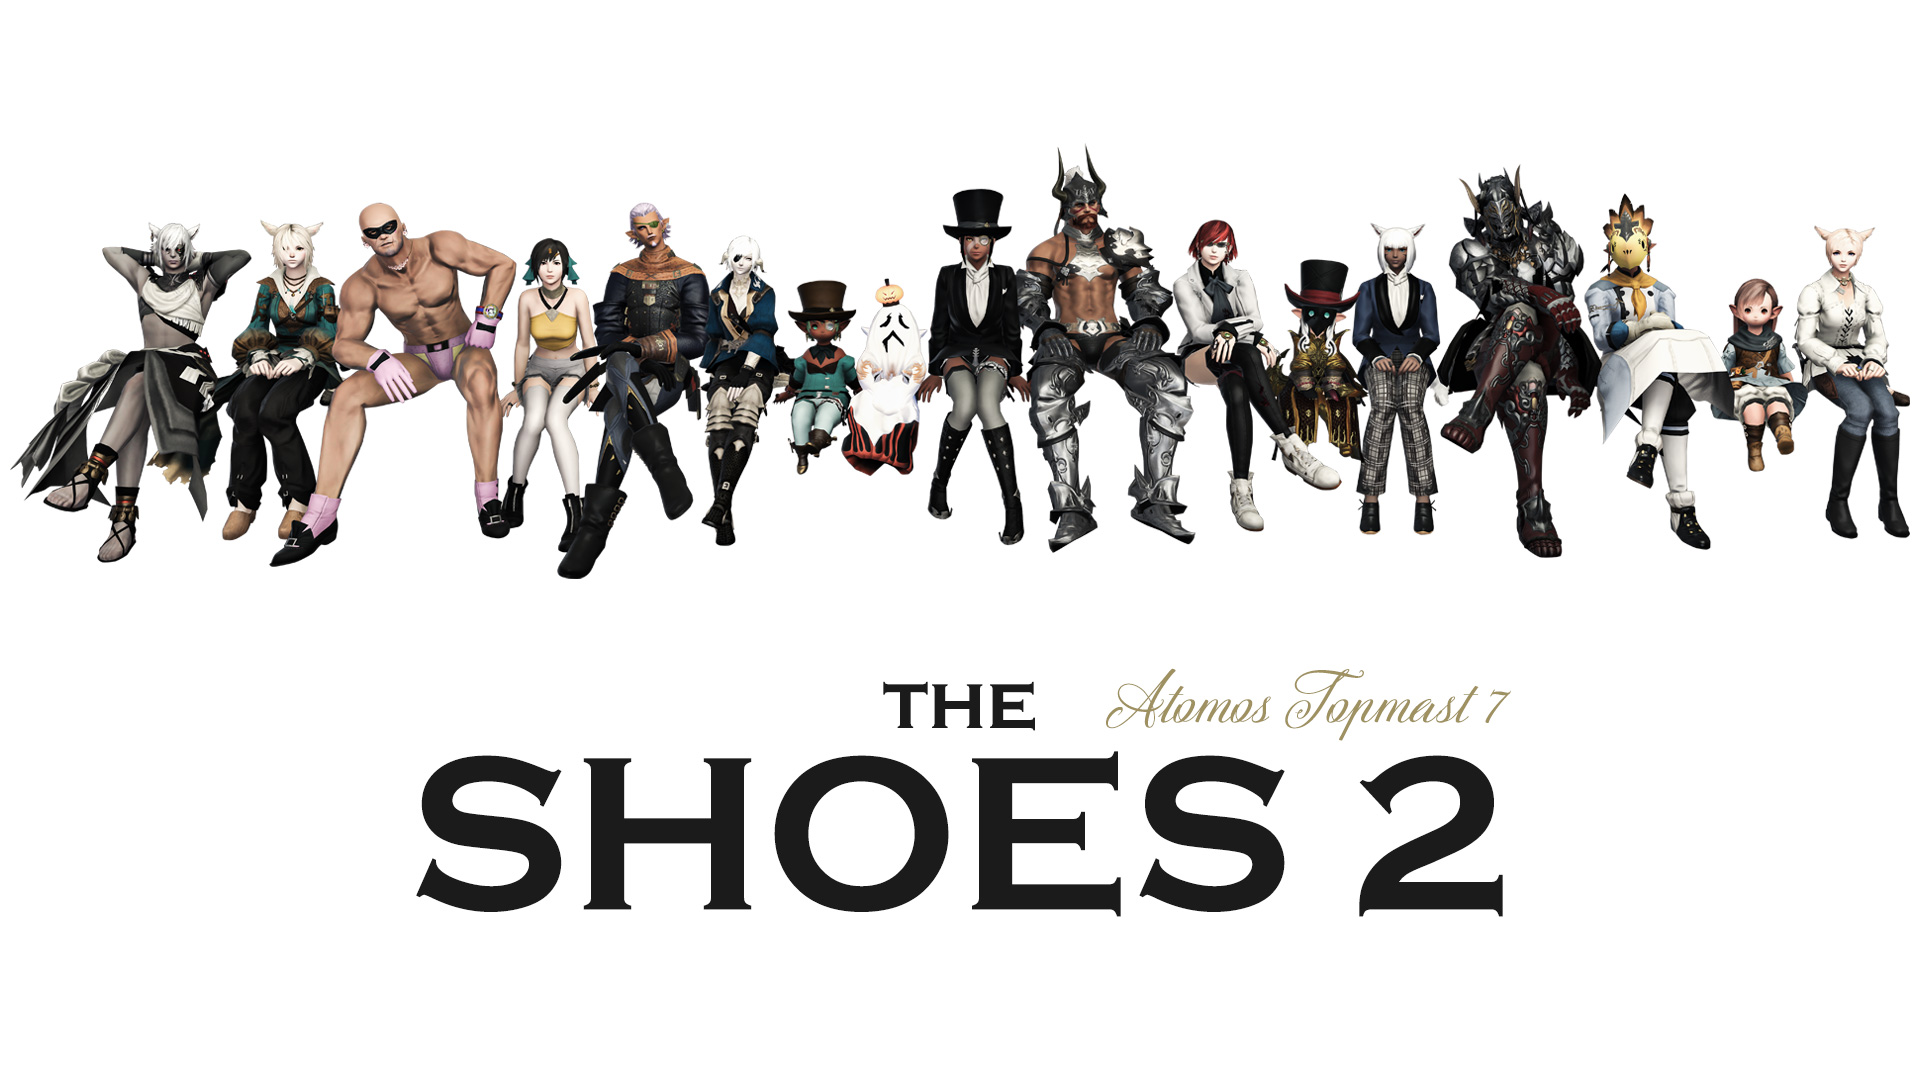 the SHOES2